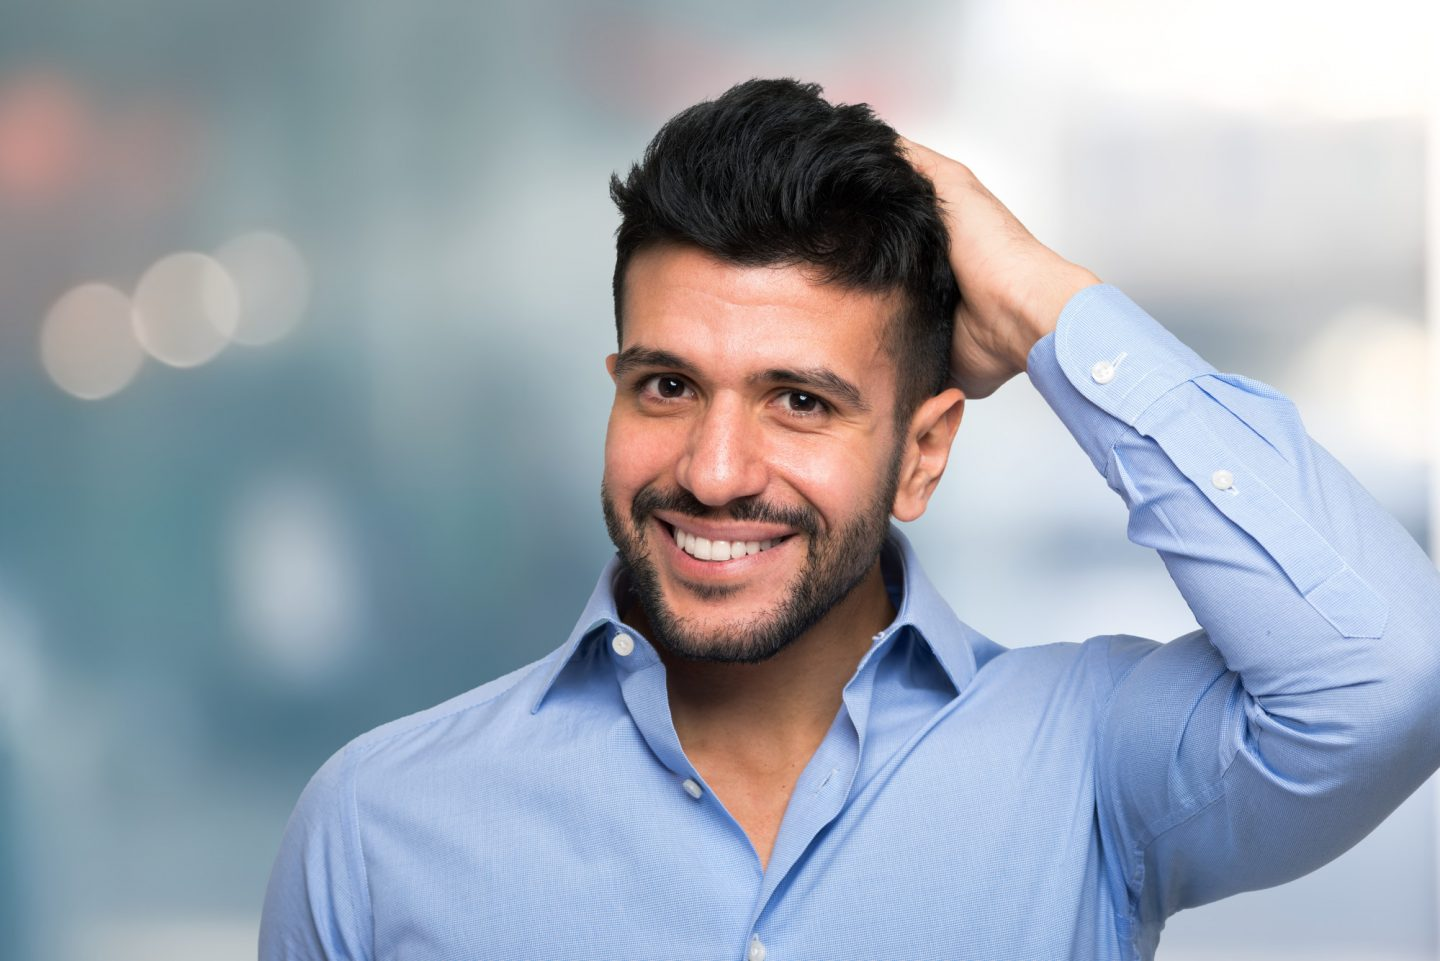 5 Benefits of FUE Hair Restoration